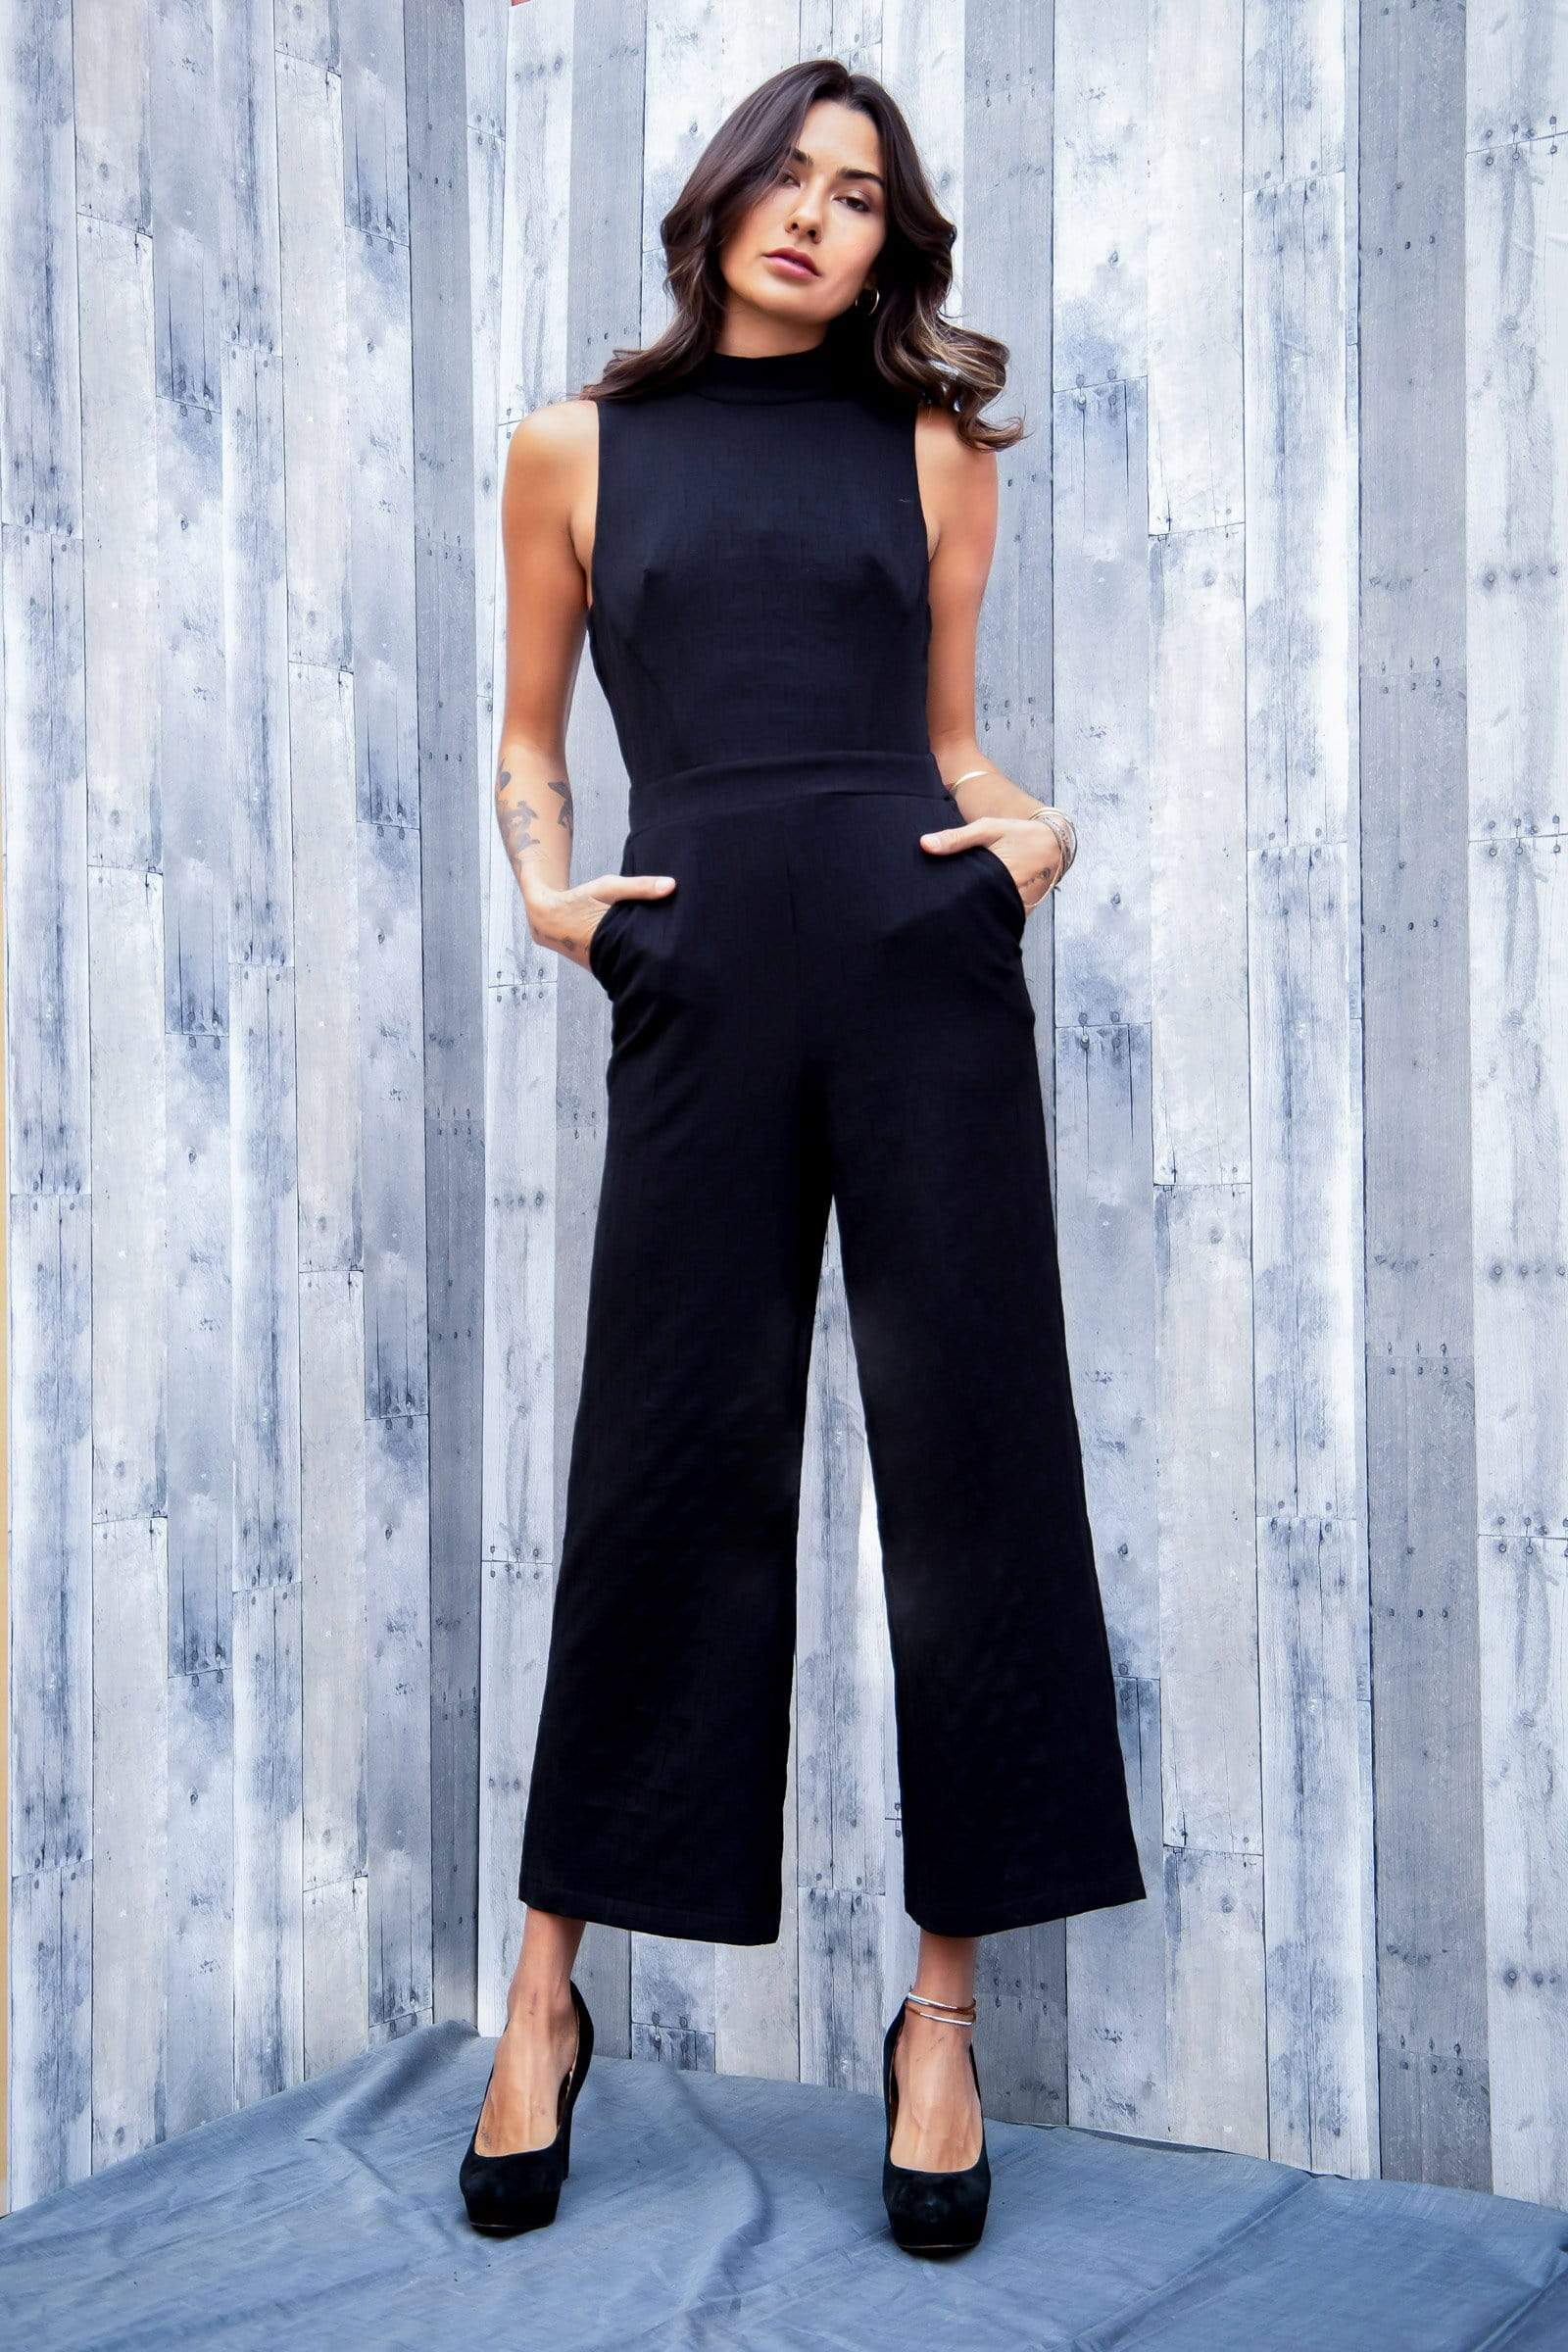 Eva Franco Jumpsuit Jumper Charley Black  Mock Neck Jumpsuit Petites and Plus Sizes